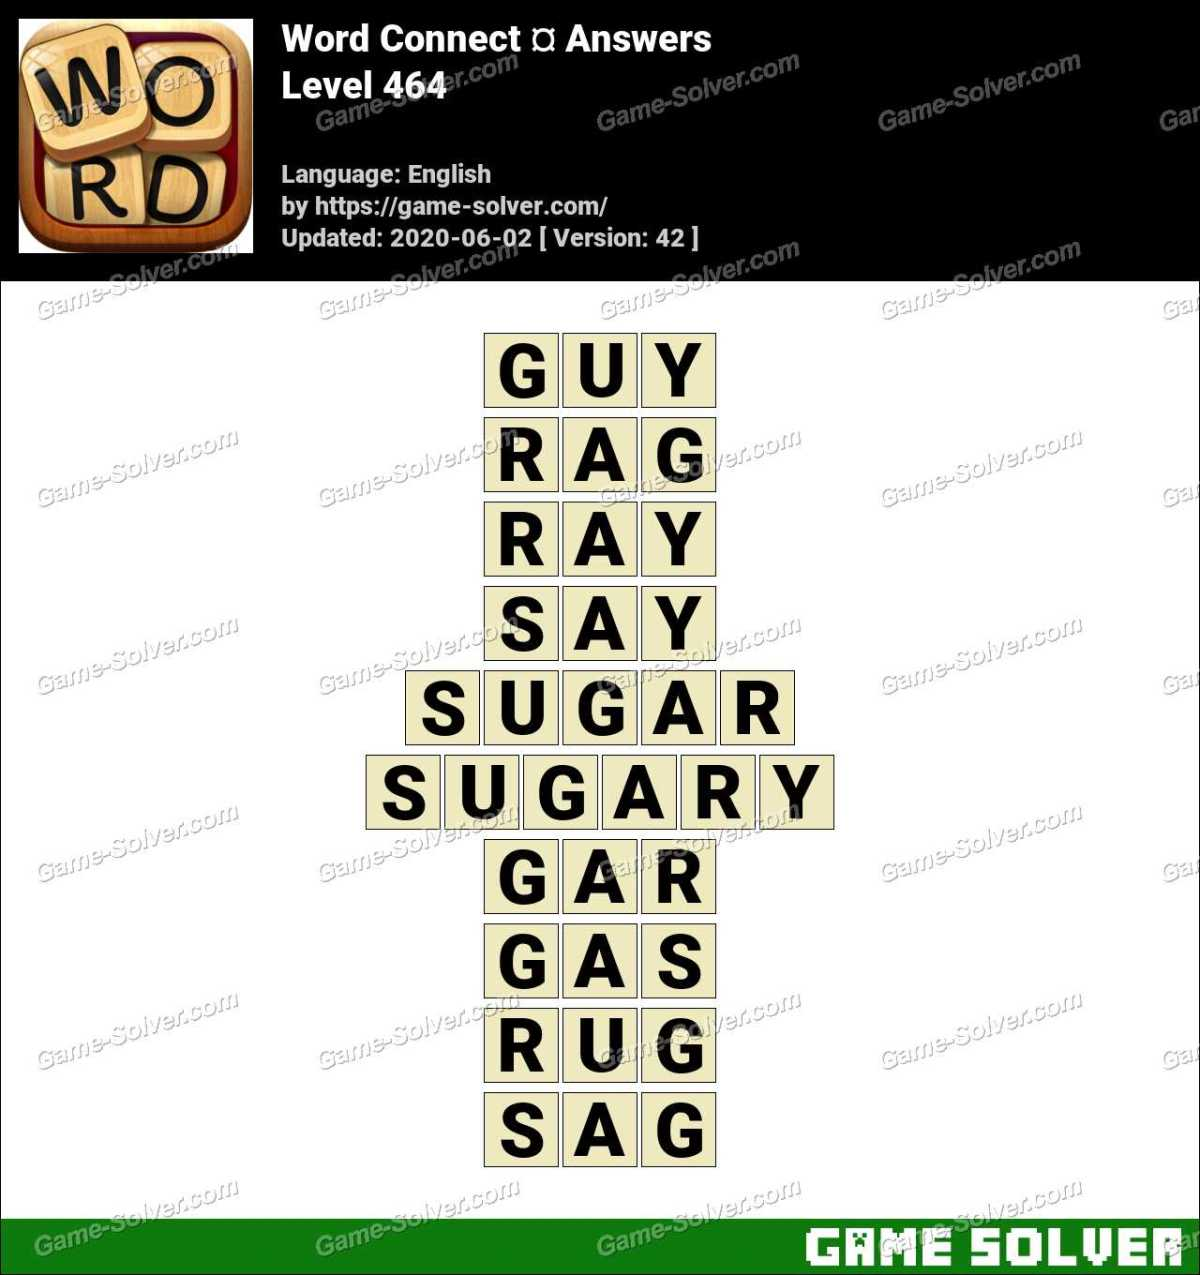 Word Connect Level 464 Answers